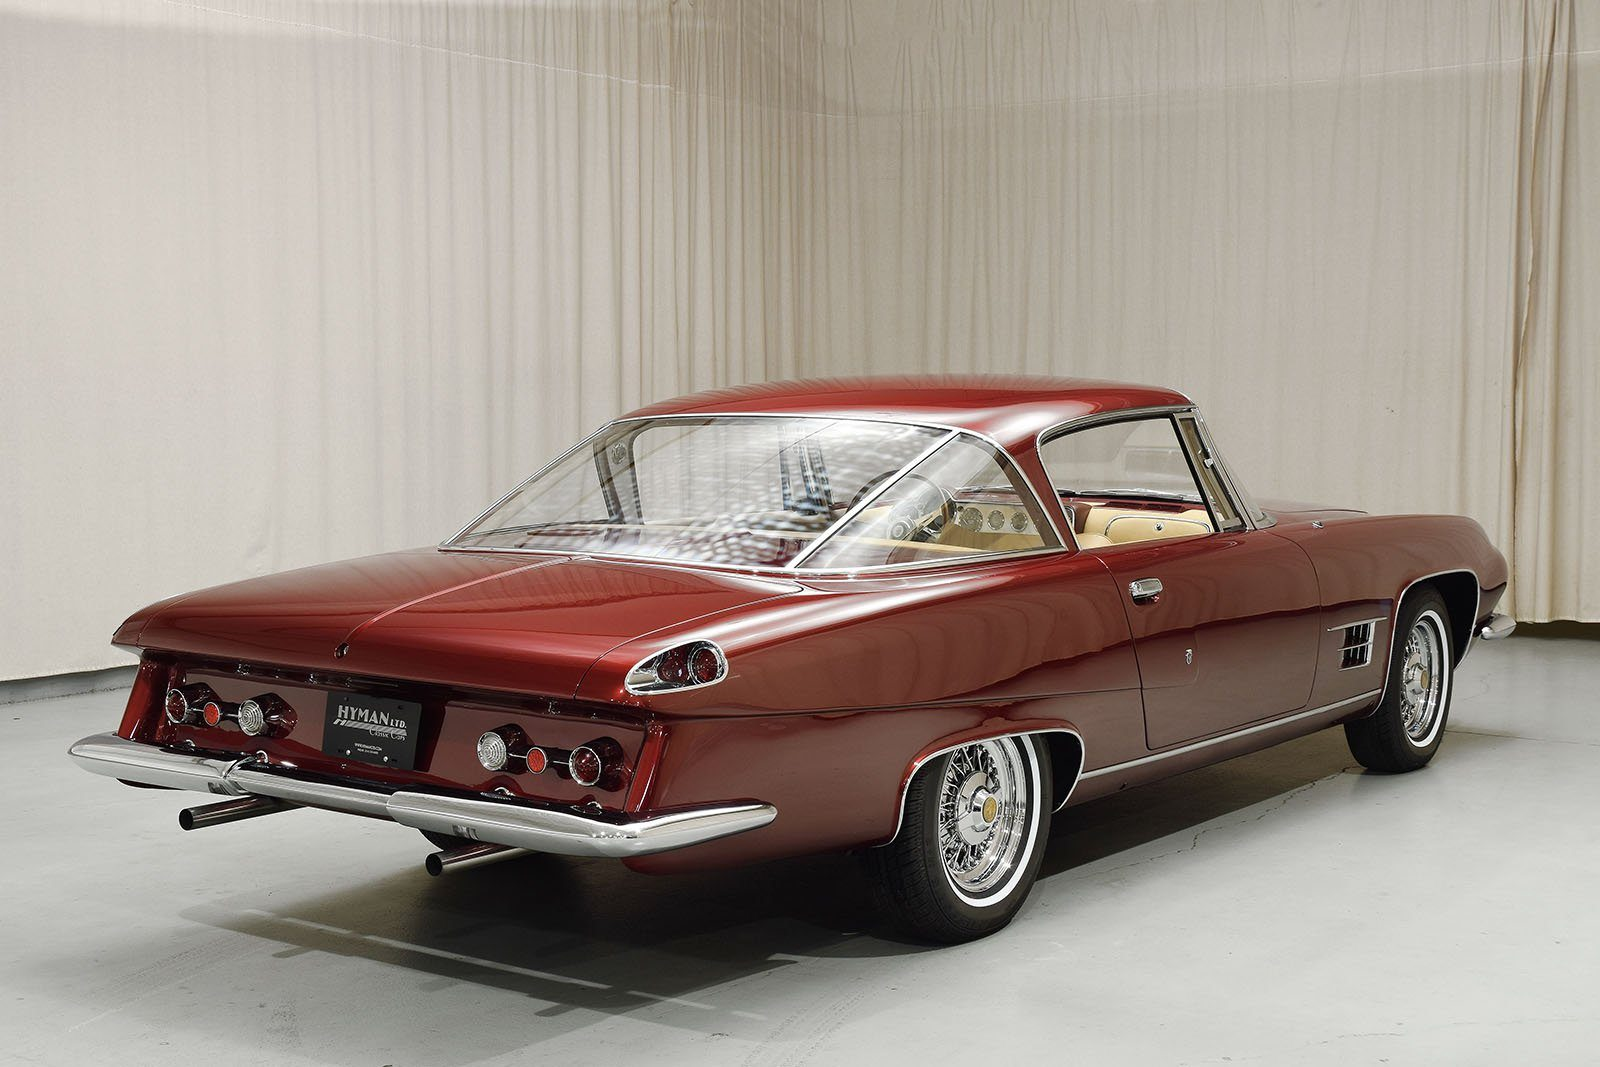 1963 Ghia L6.4 Coupe viewed from rear